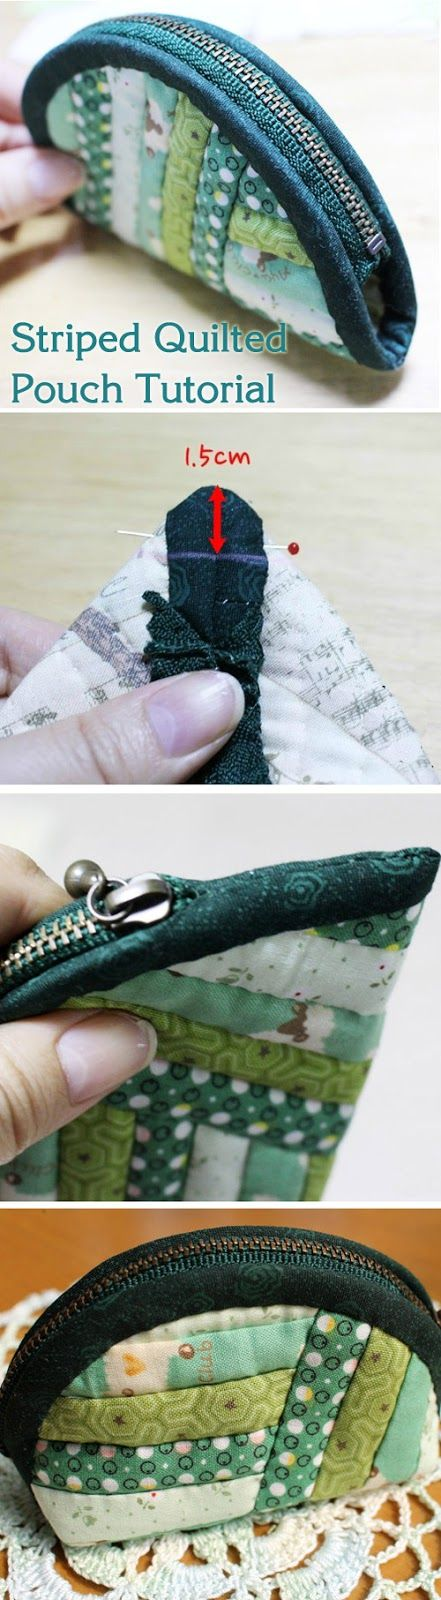 This zip pouch is made with scraps sewn together to form panels, DIY Tutorial. Кошелек на молнии http://www.handmadiya.com/2015/09/striped-quilted-pouch-tutorial.html